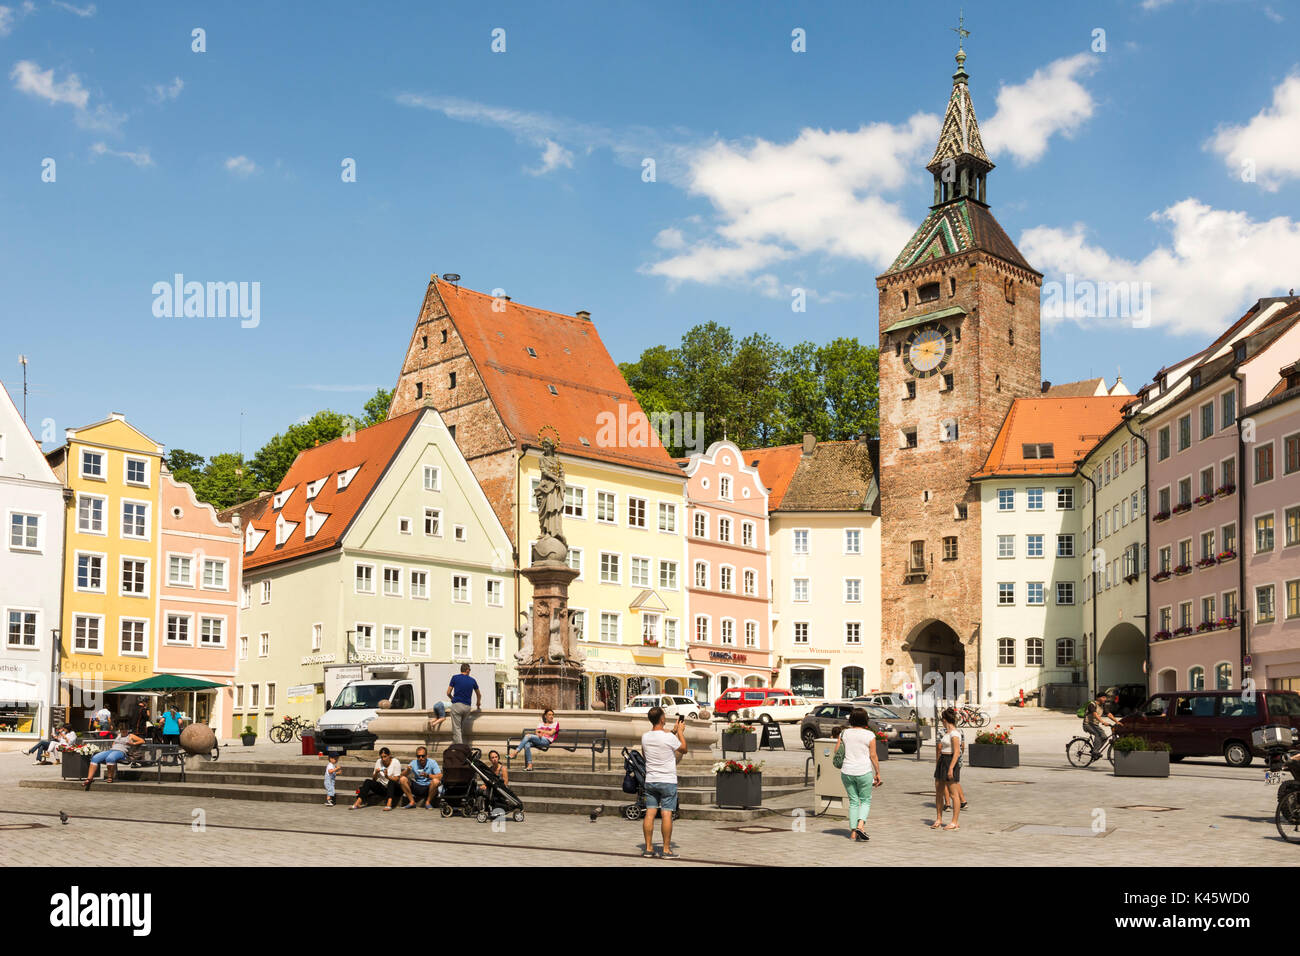 LANDSBERG AM LECH, GERMANY - JUNE 10: People at the market square of Landsberg am Lech, Germany on June 10, 2017. Landsberg is situated on the so call - Stock Image